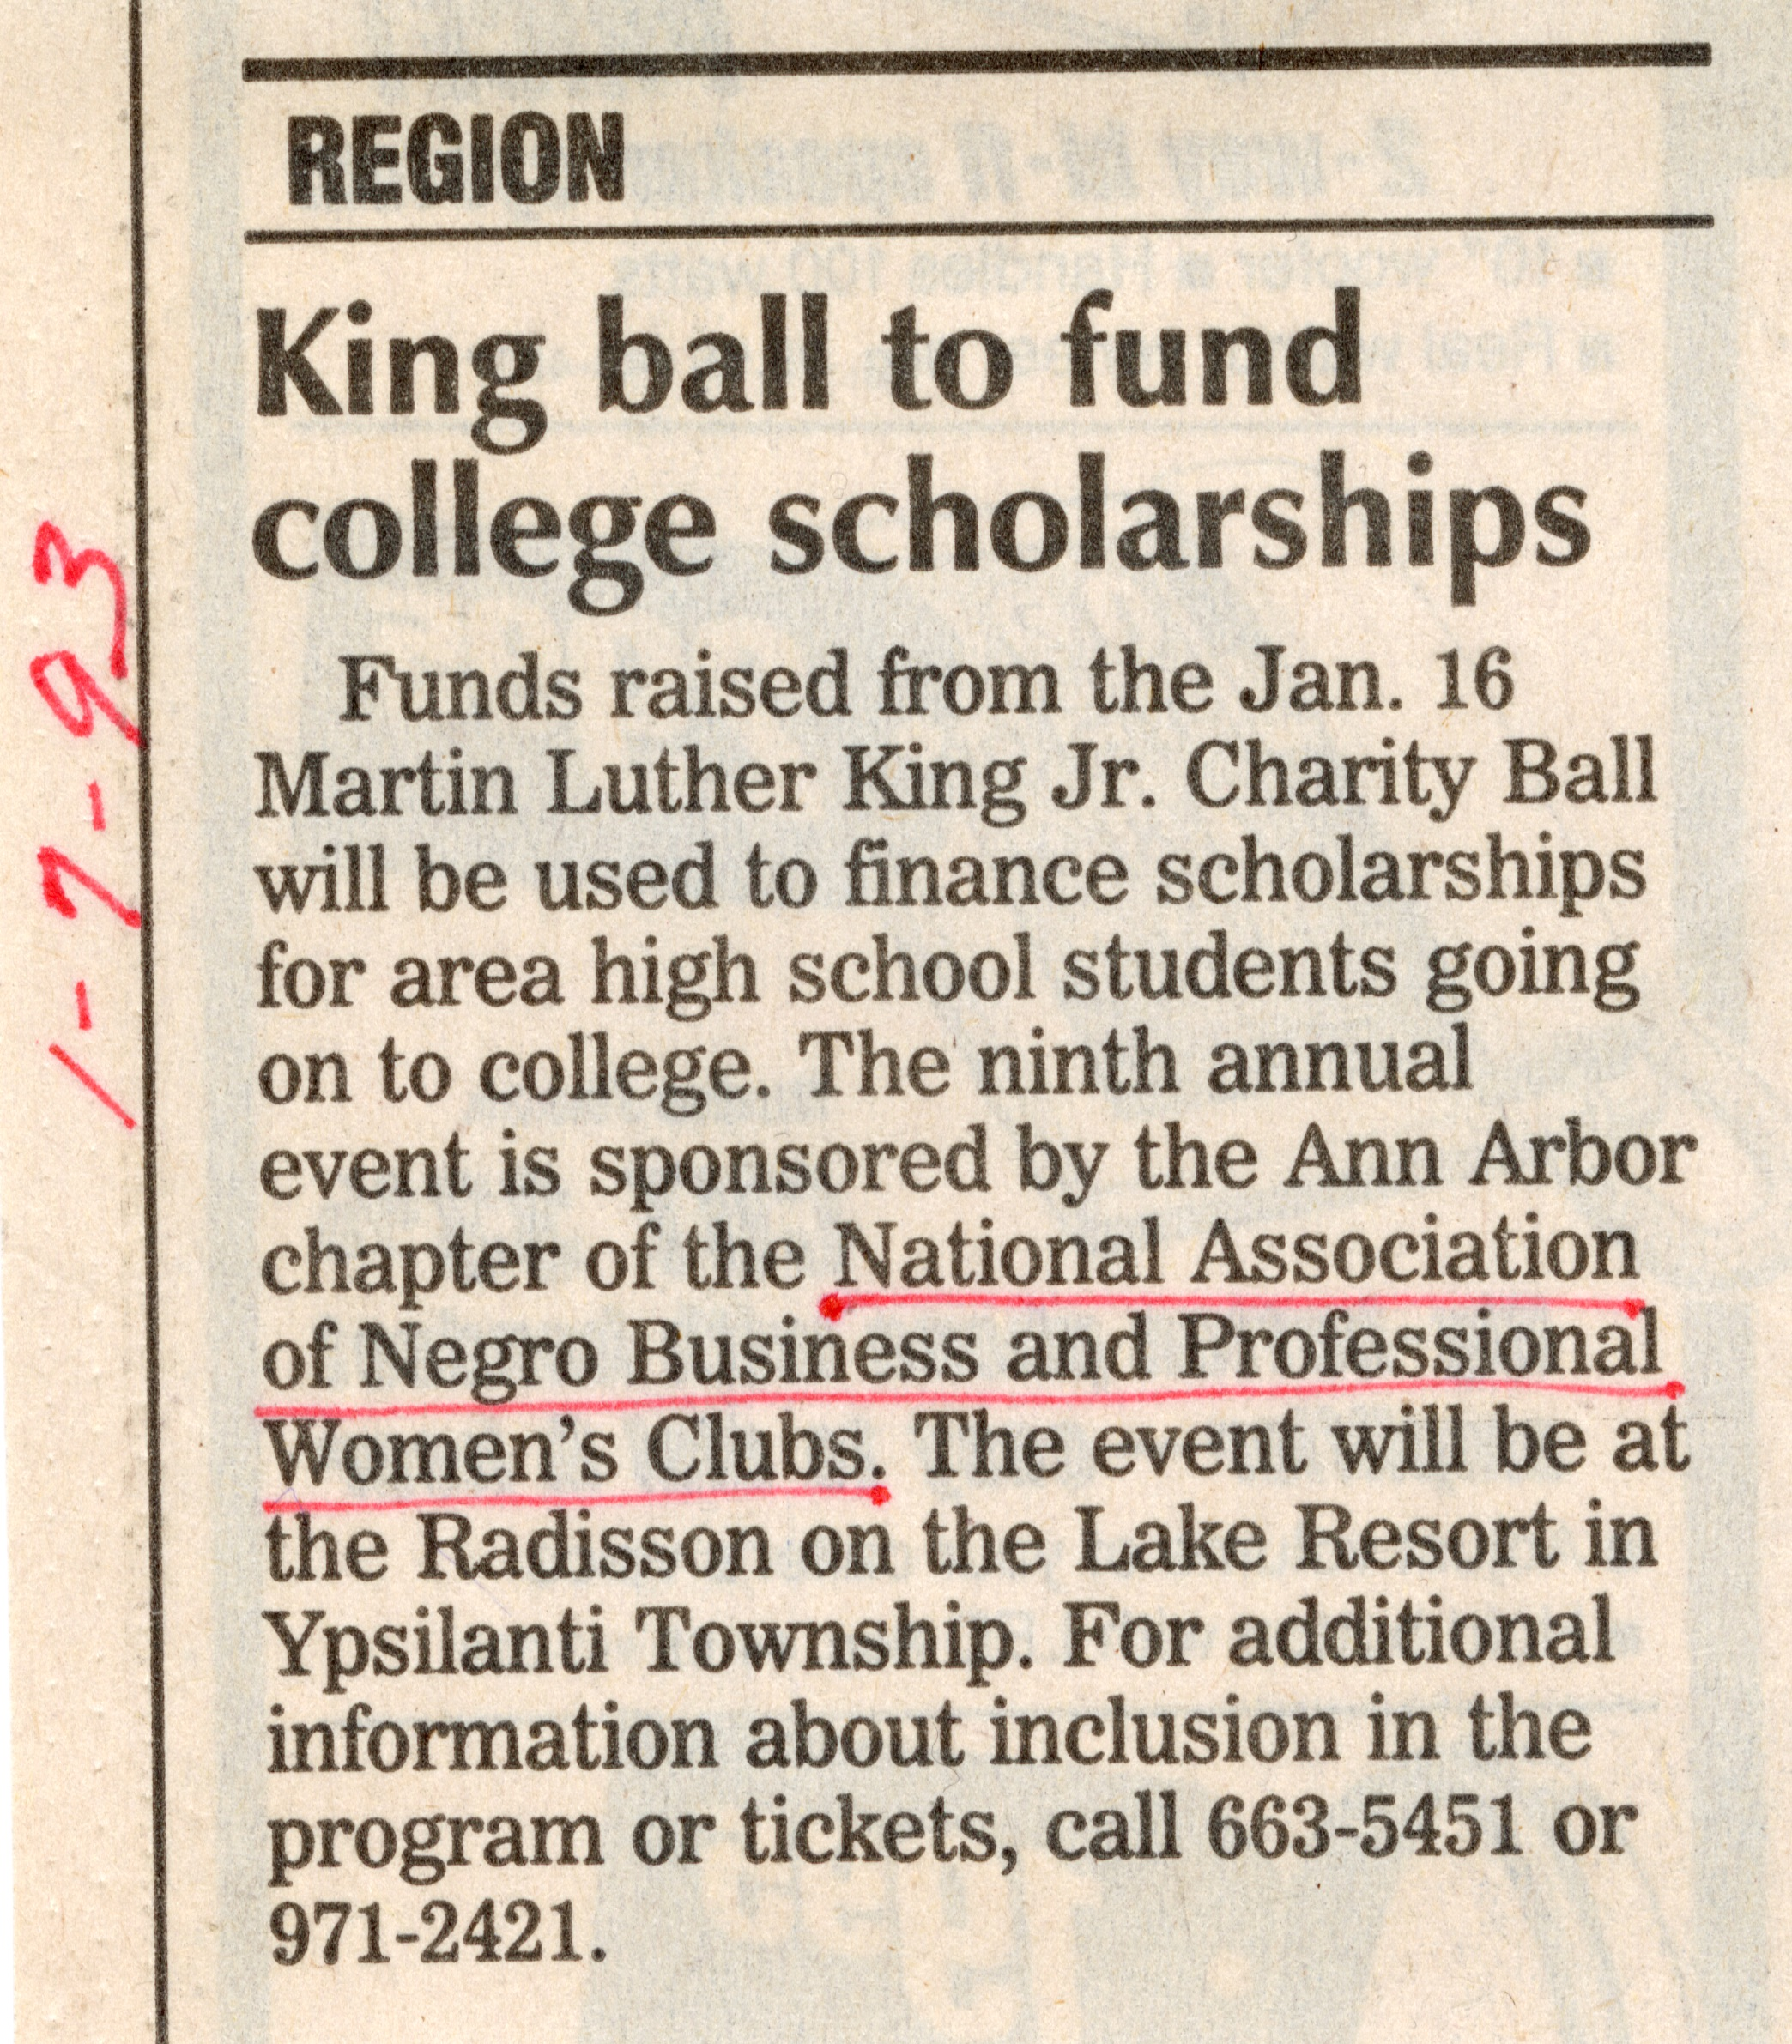 King ball to fund college scholarship image